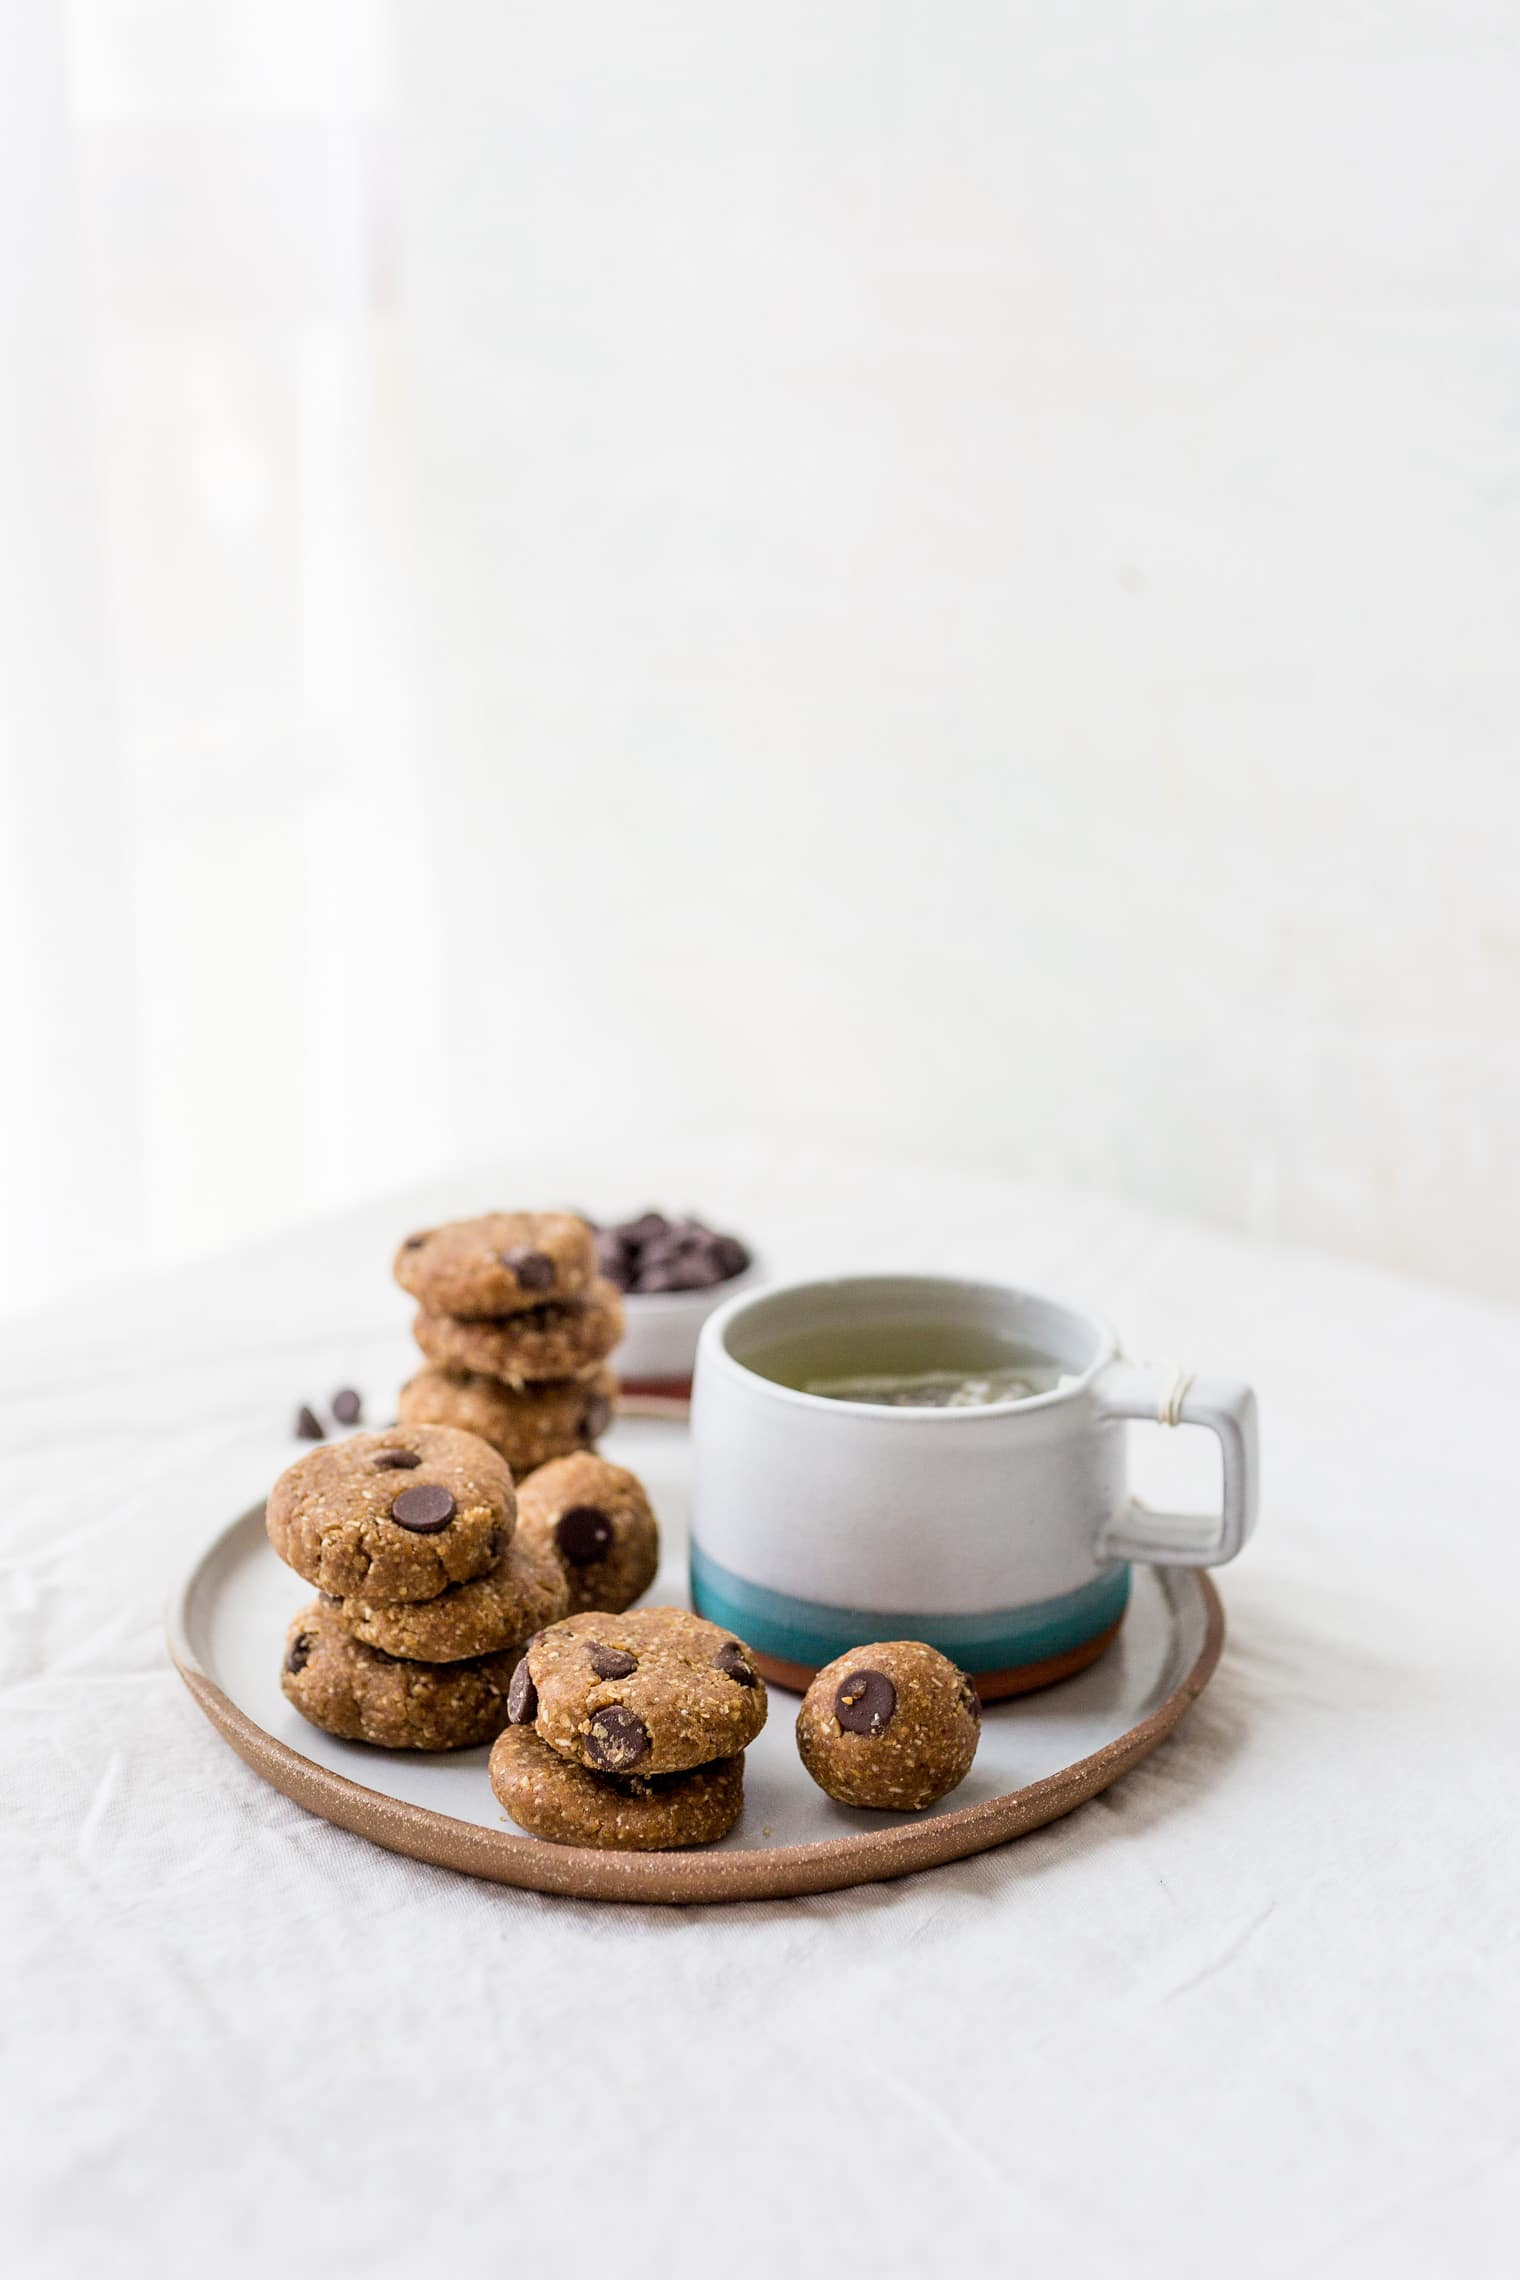 Cookie Dough Balls on plate with mug of tea